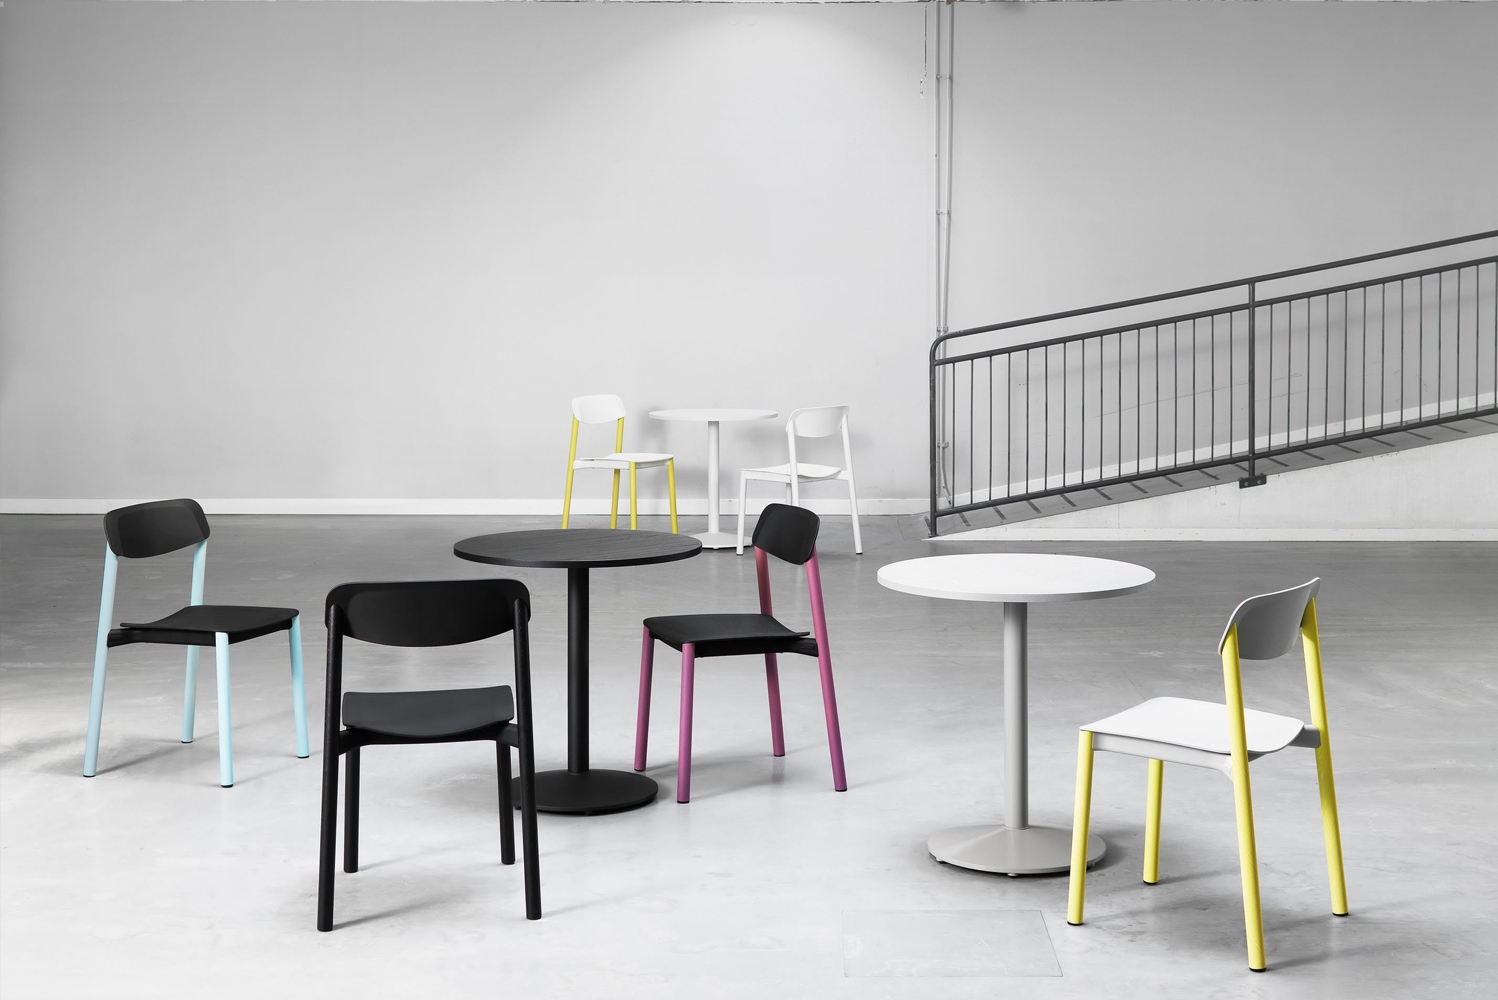 Introducing Penne by Swedish contract furniture brand Lammhults, the world's first chair with legs created using laminated wooden tubes.